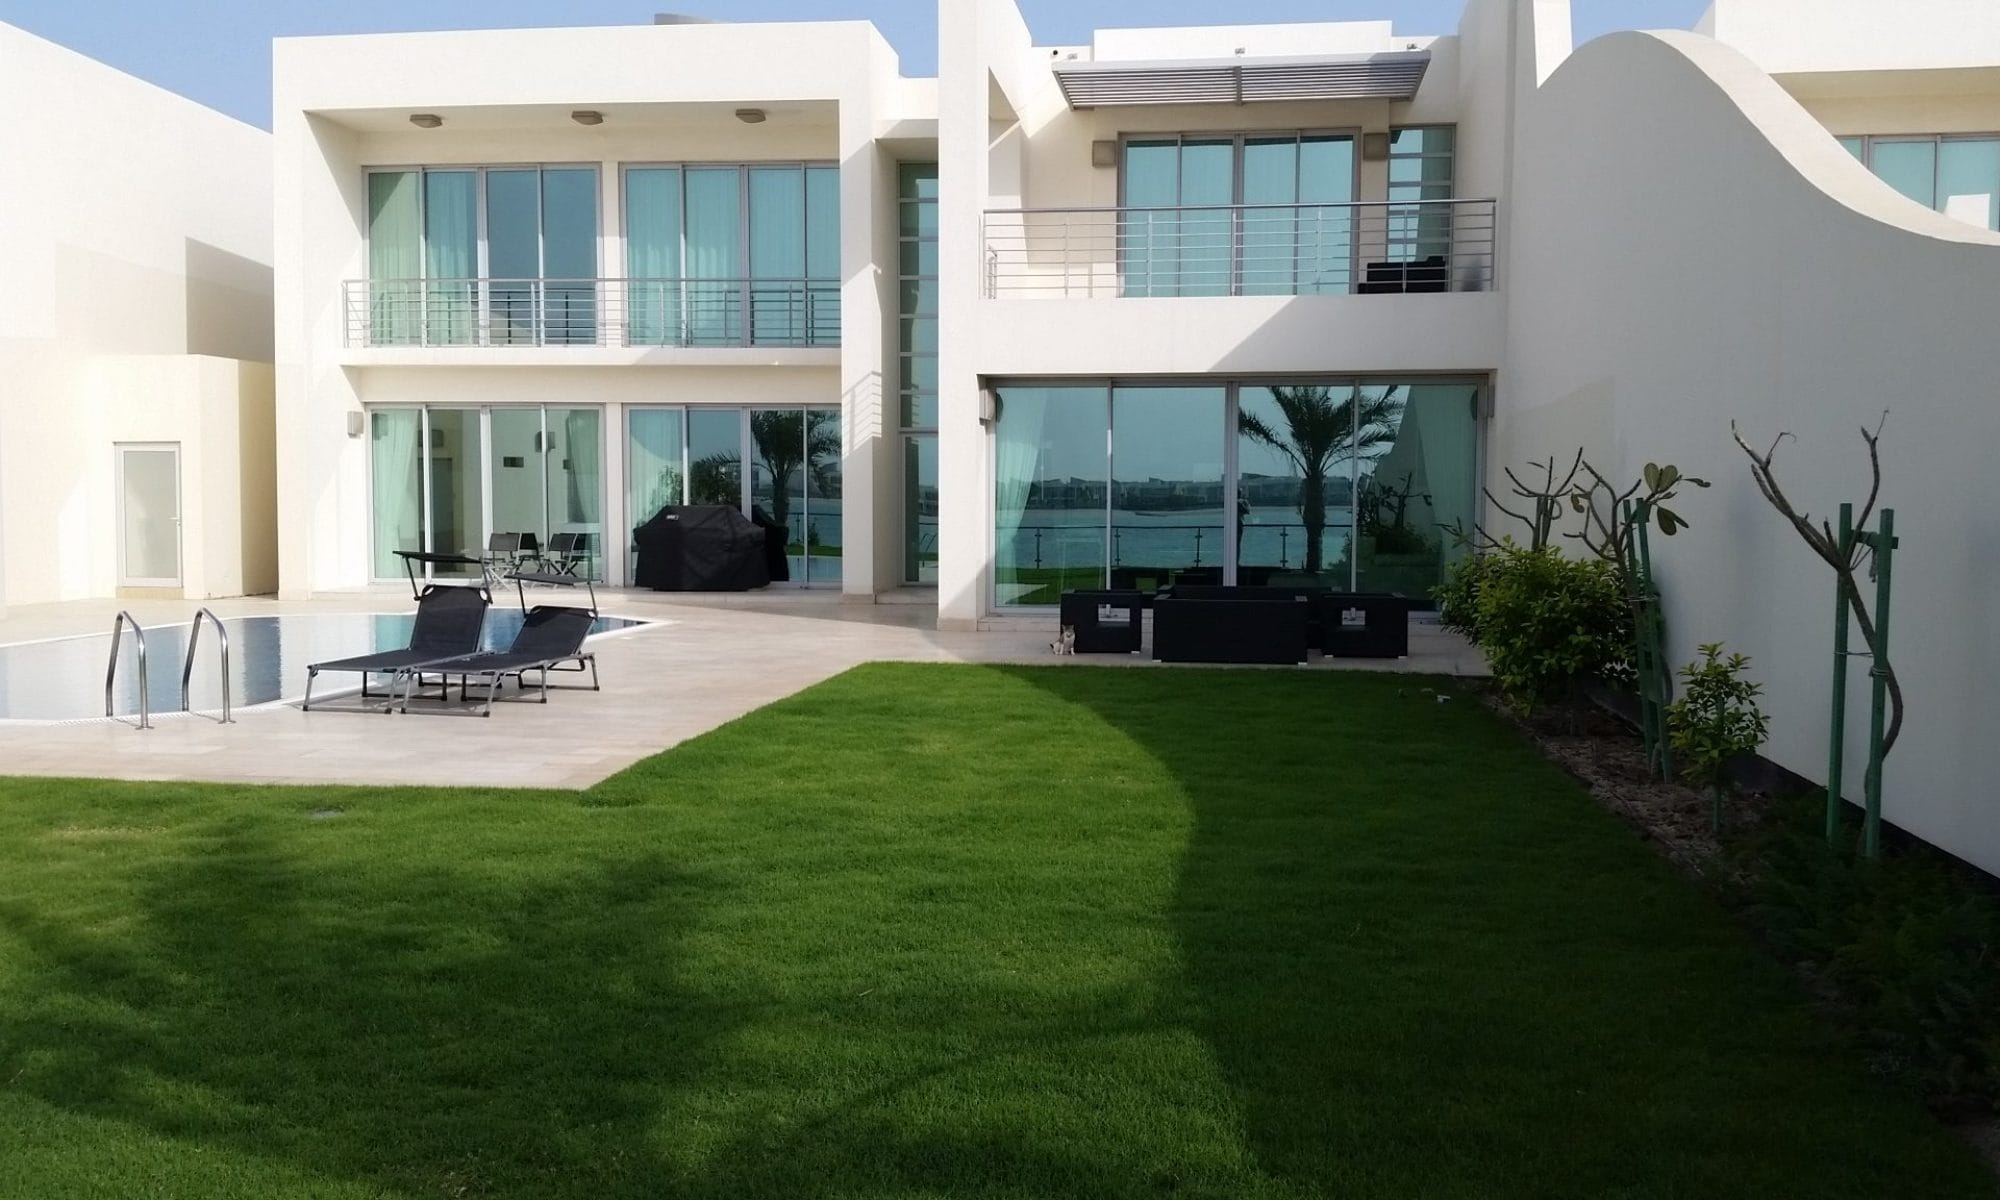 Durrat al Bahrain - Beach-Villa for Sale: 379,000 BD - negotiable